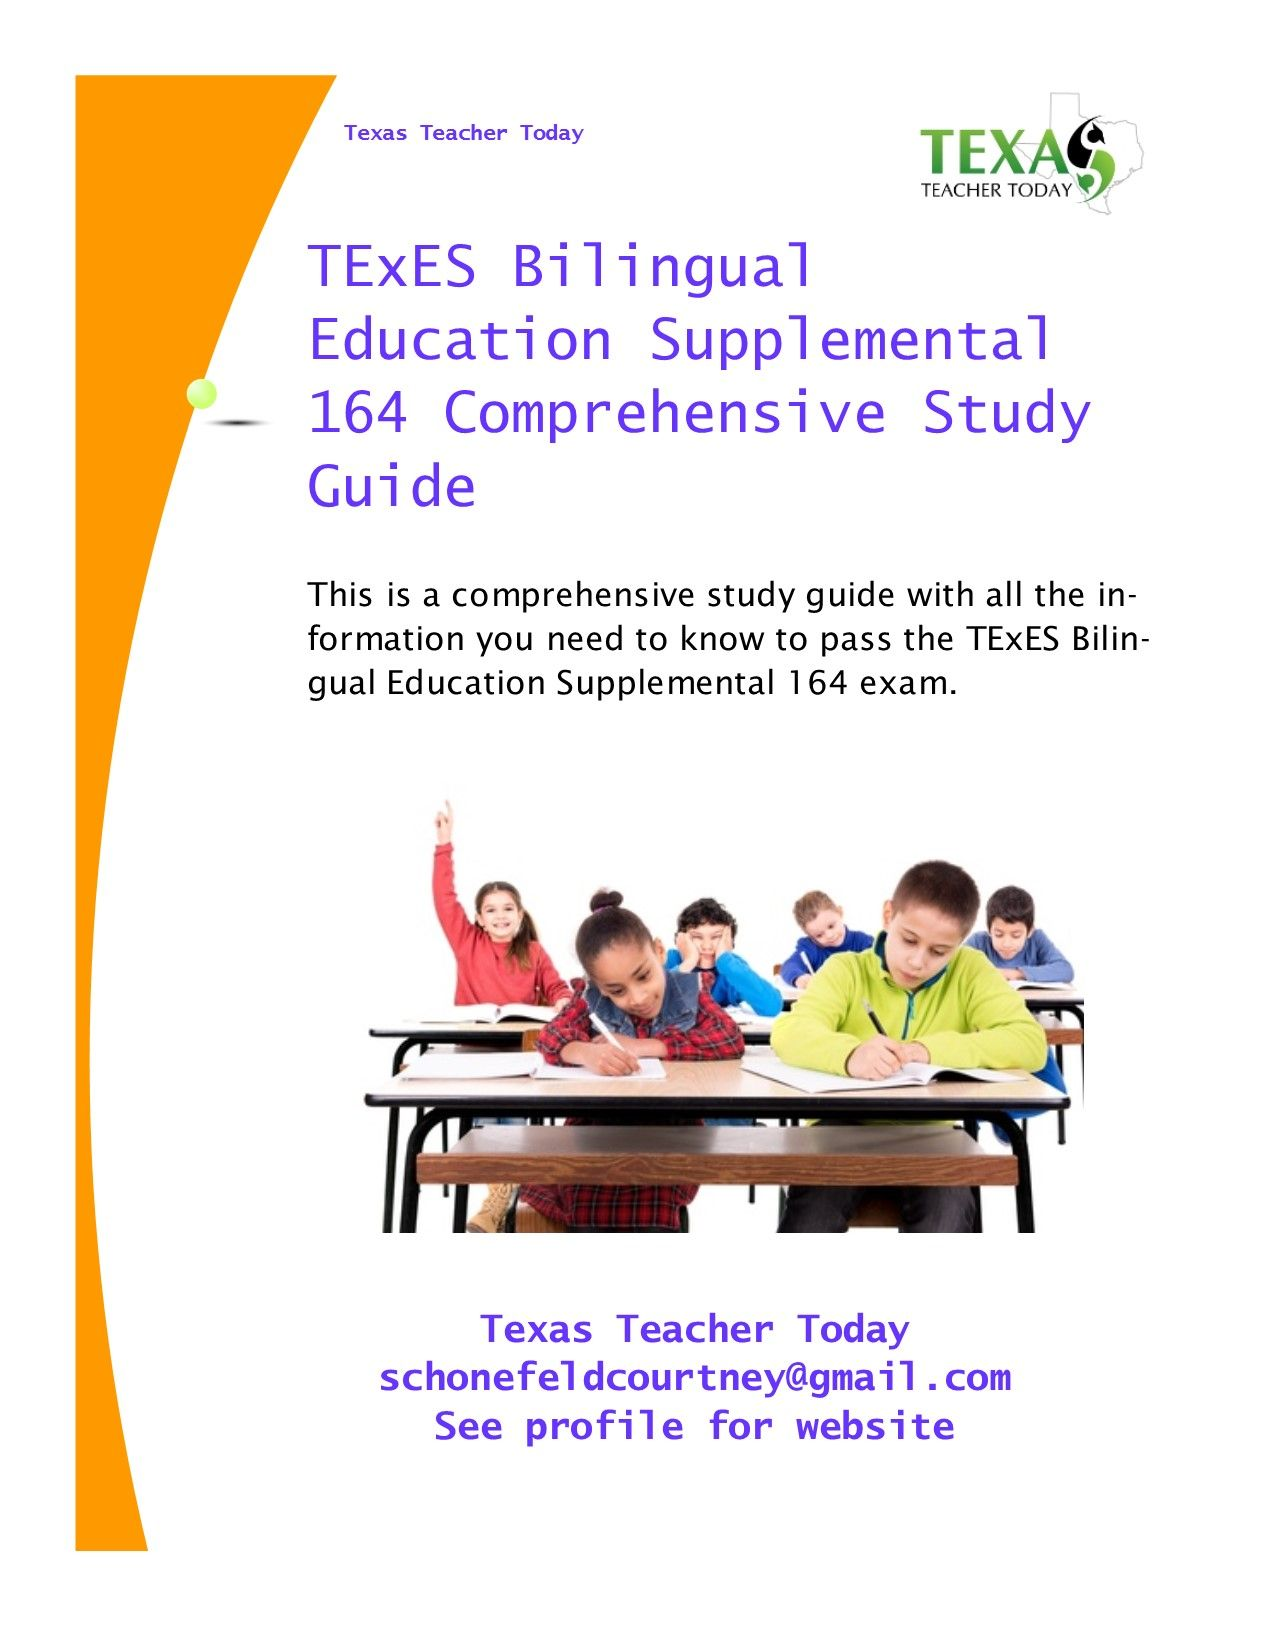 Study Material For The Texes Bilingual Supplemental 164 Exam